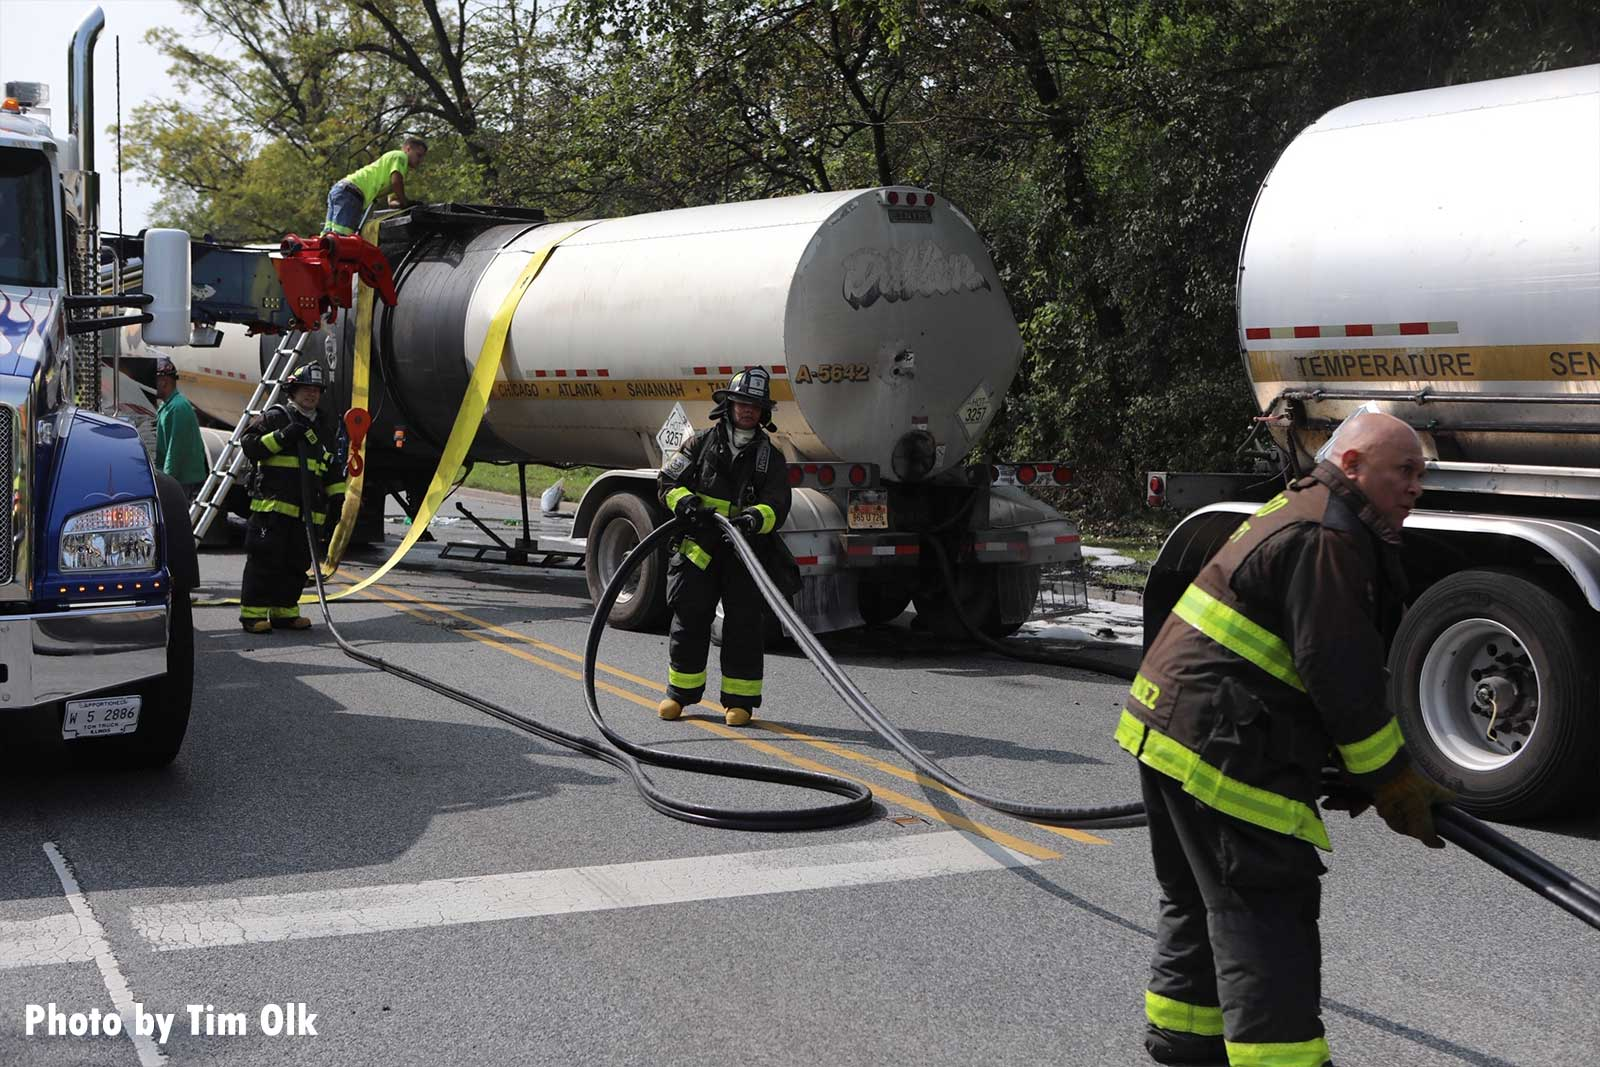 Firefighters with hoselines at the scene of the tanker incident